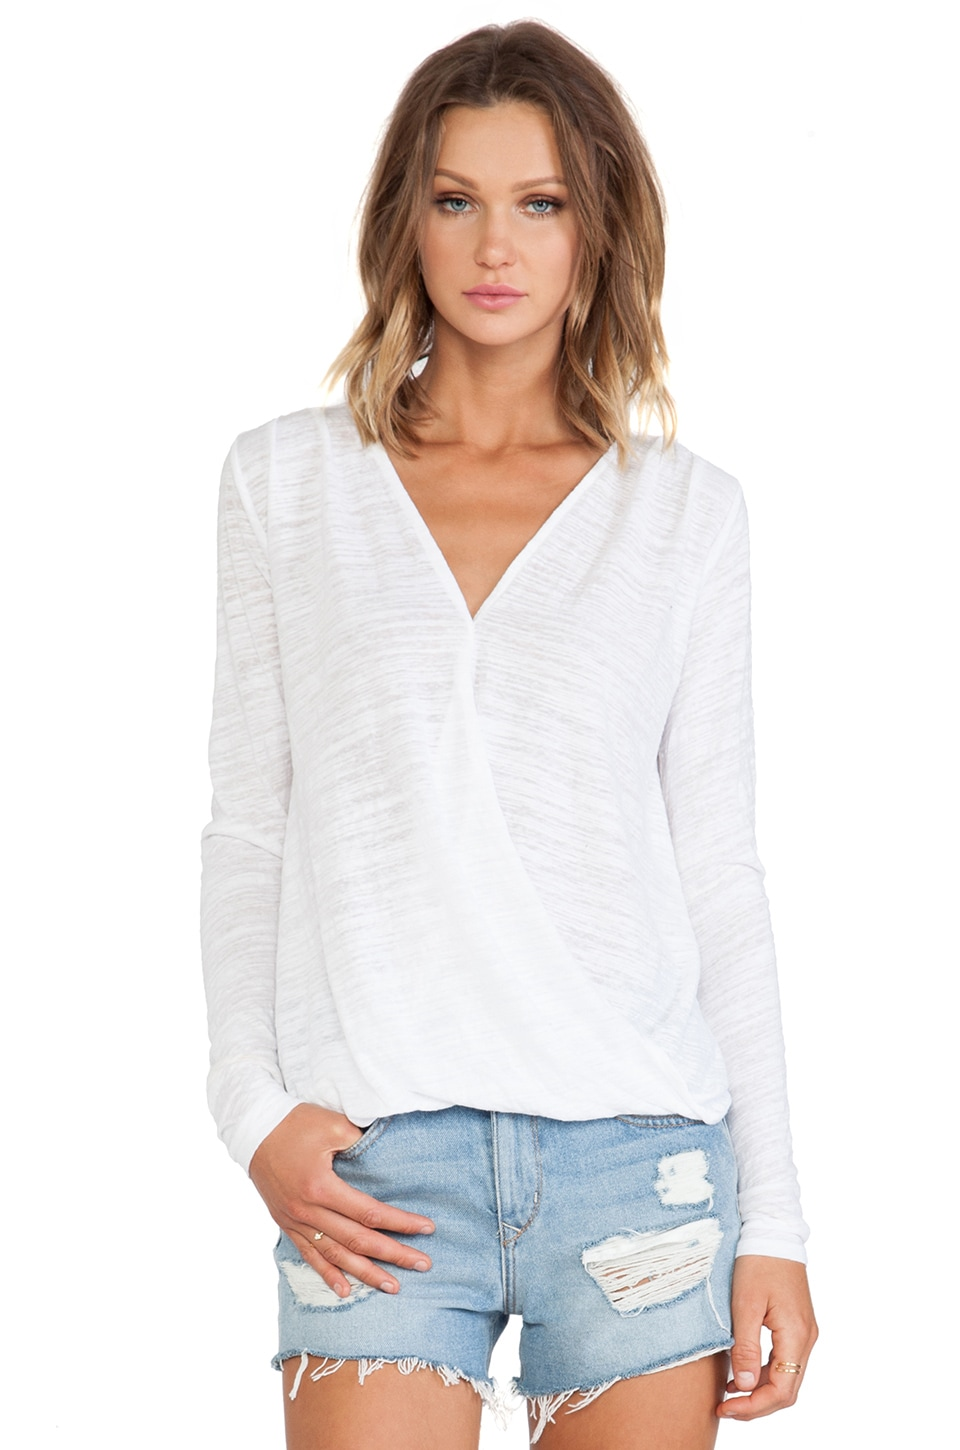 Velvet by Graham & Spencer Jeanne Soft Textured Knit Top in White